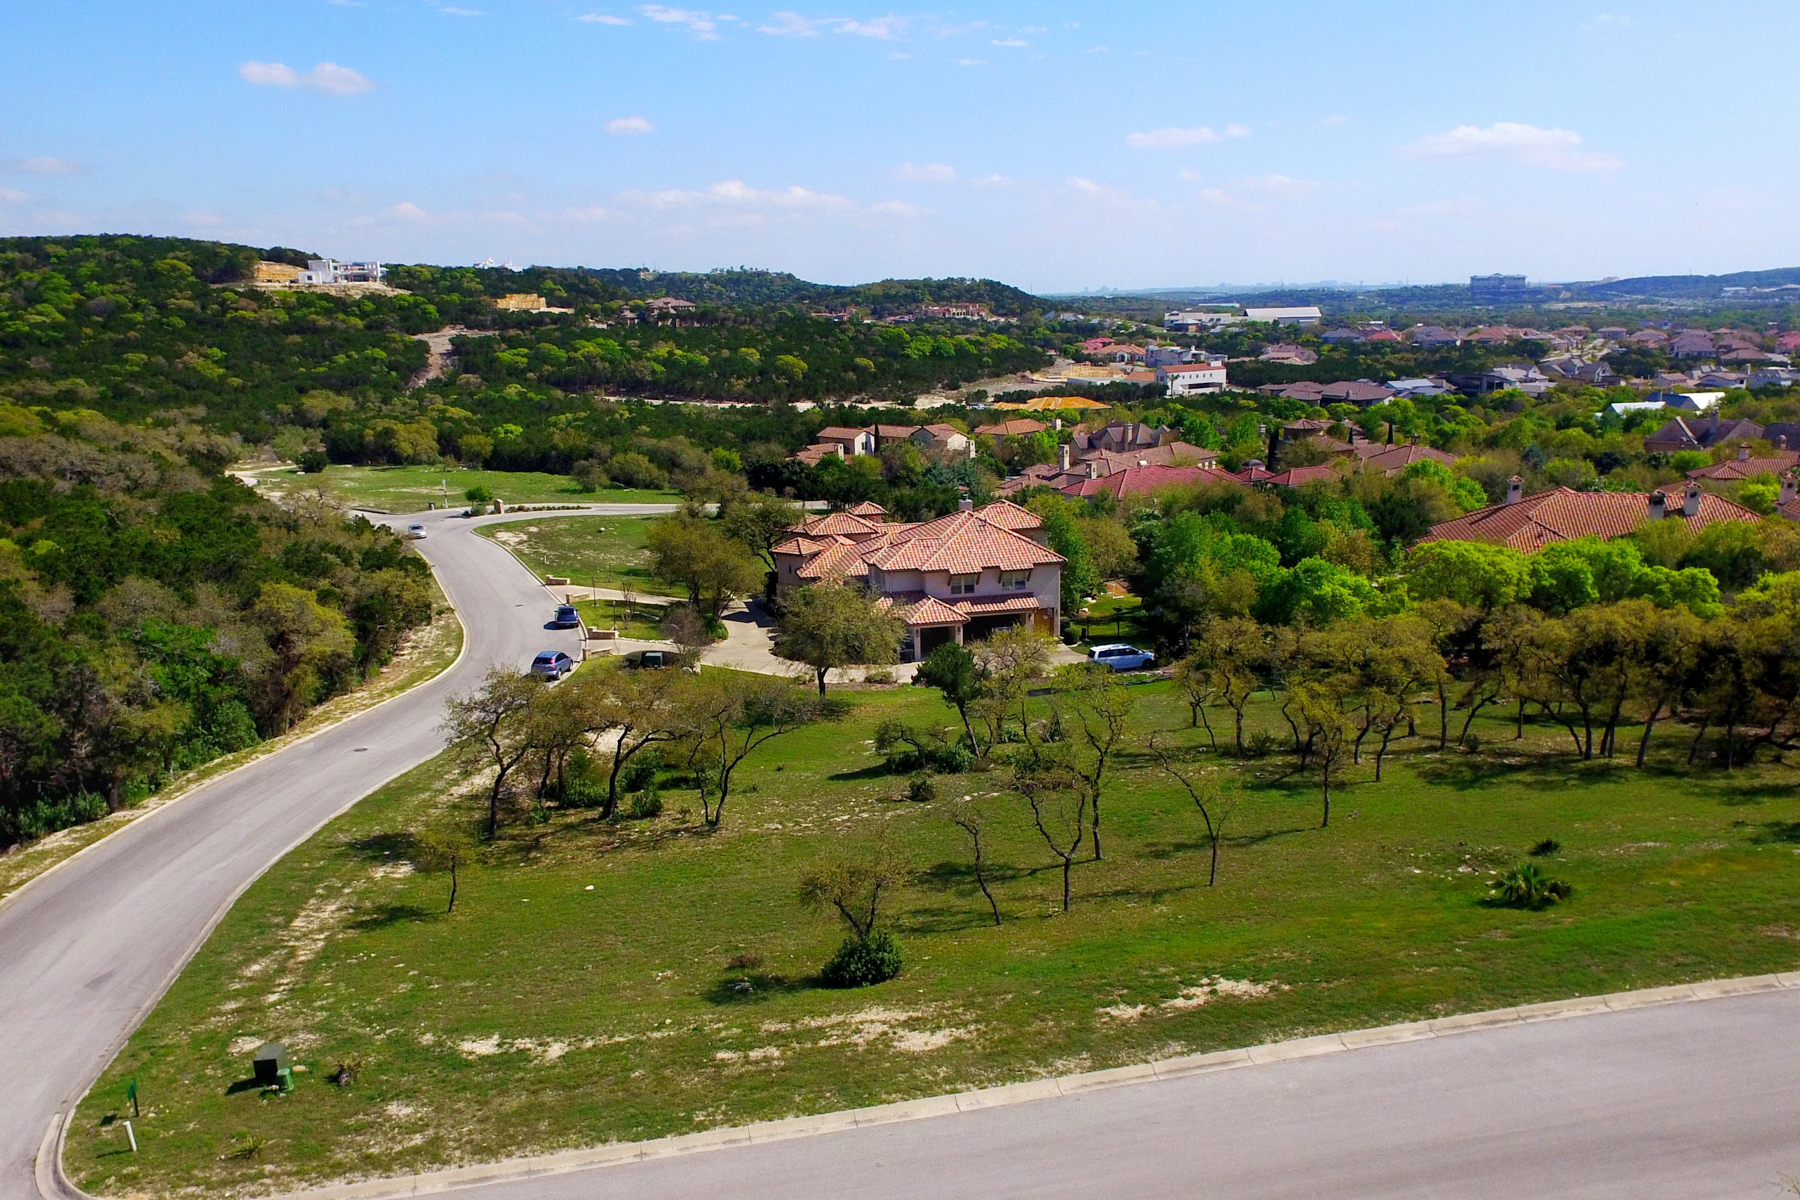 Terreno por un Venta en Exquisite Lot in The Dominion 50 Majestic Way San Antonio, Texas 78257 Estados Unidos